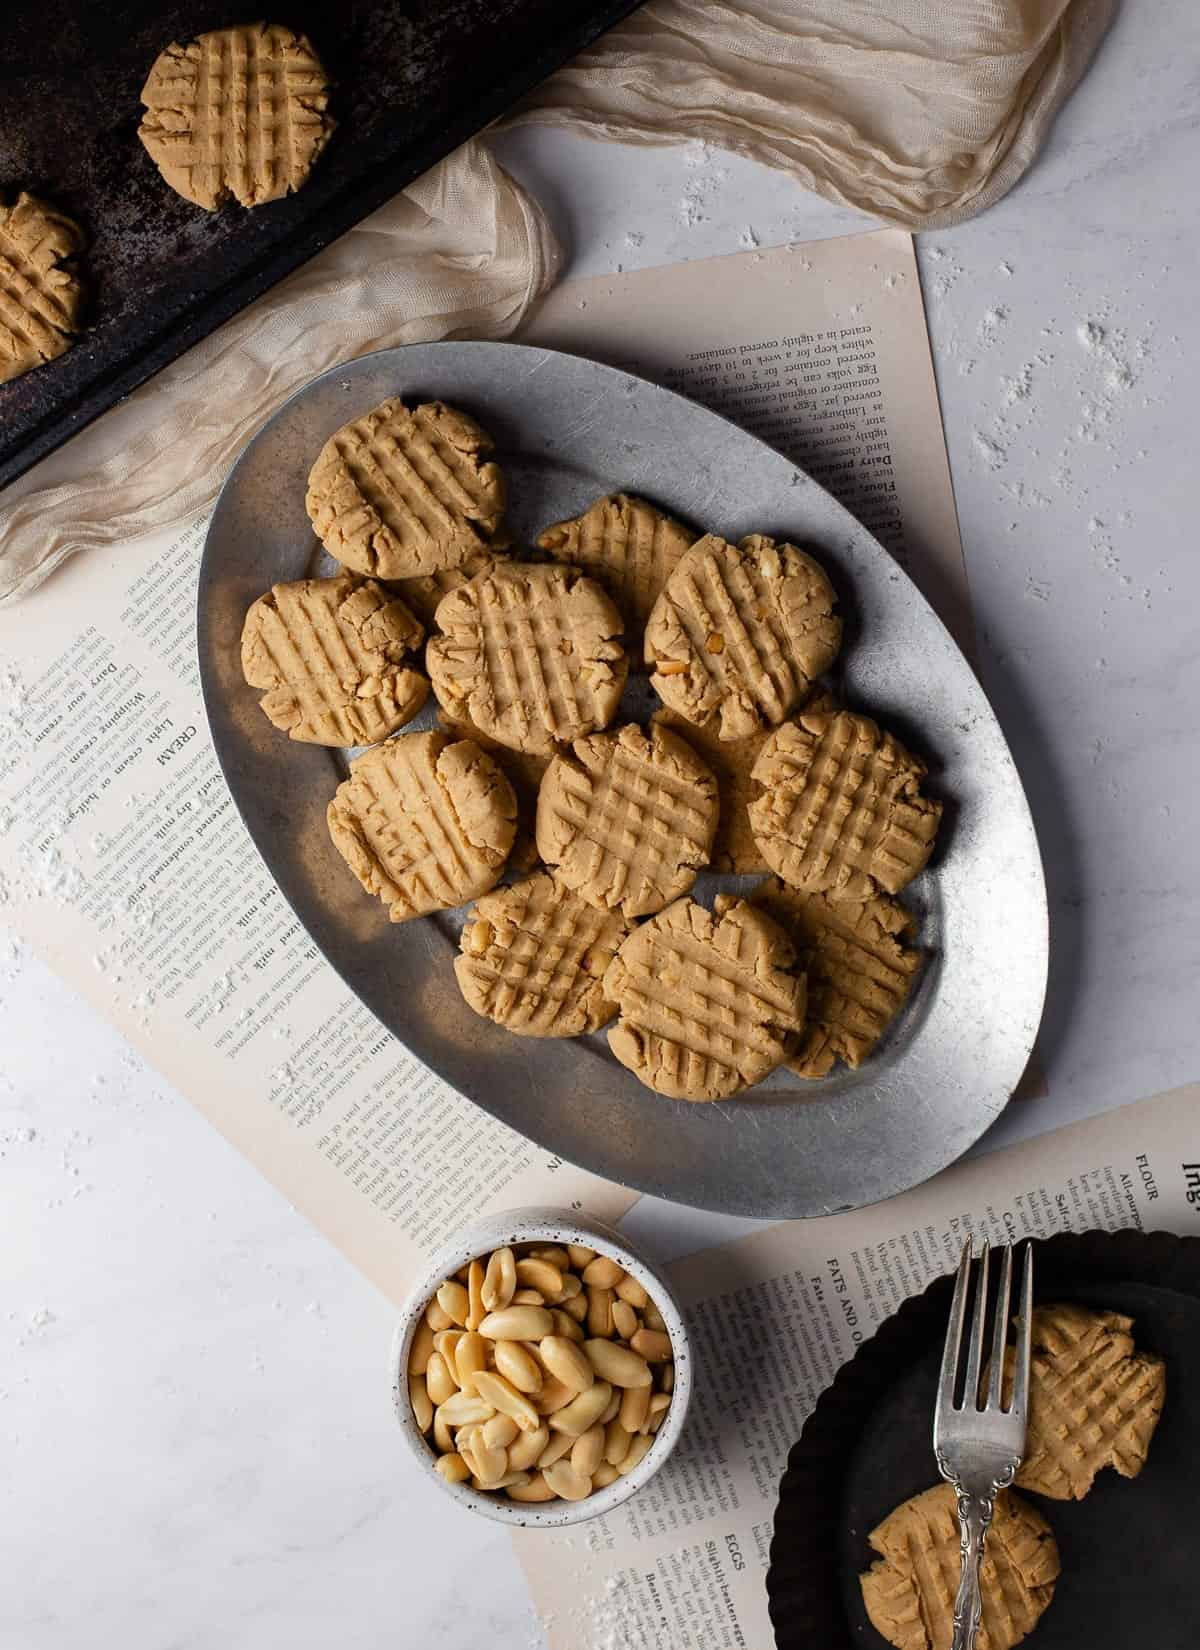 vegan peanutbutter cookies on a plate